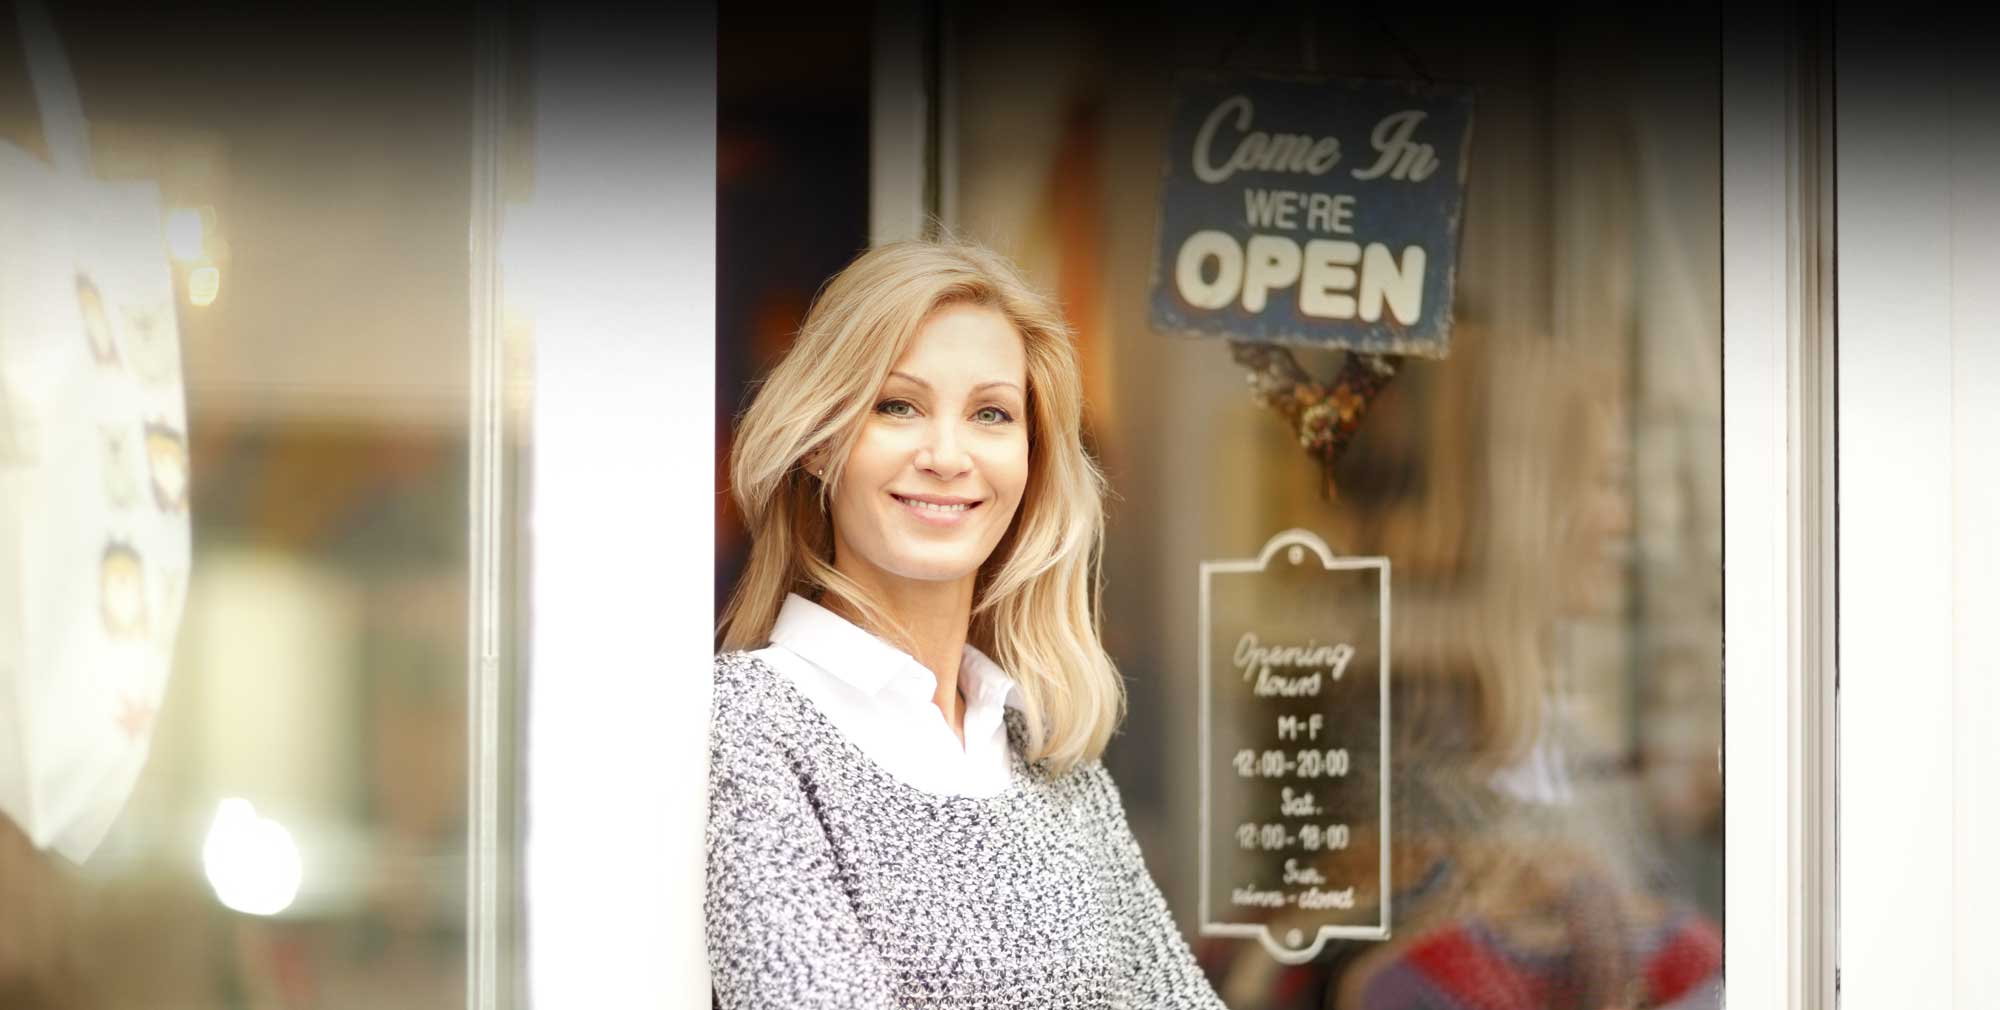 A smiling woman standing in the doorway of her local business.